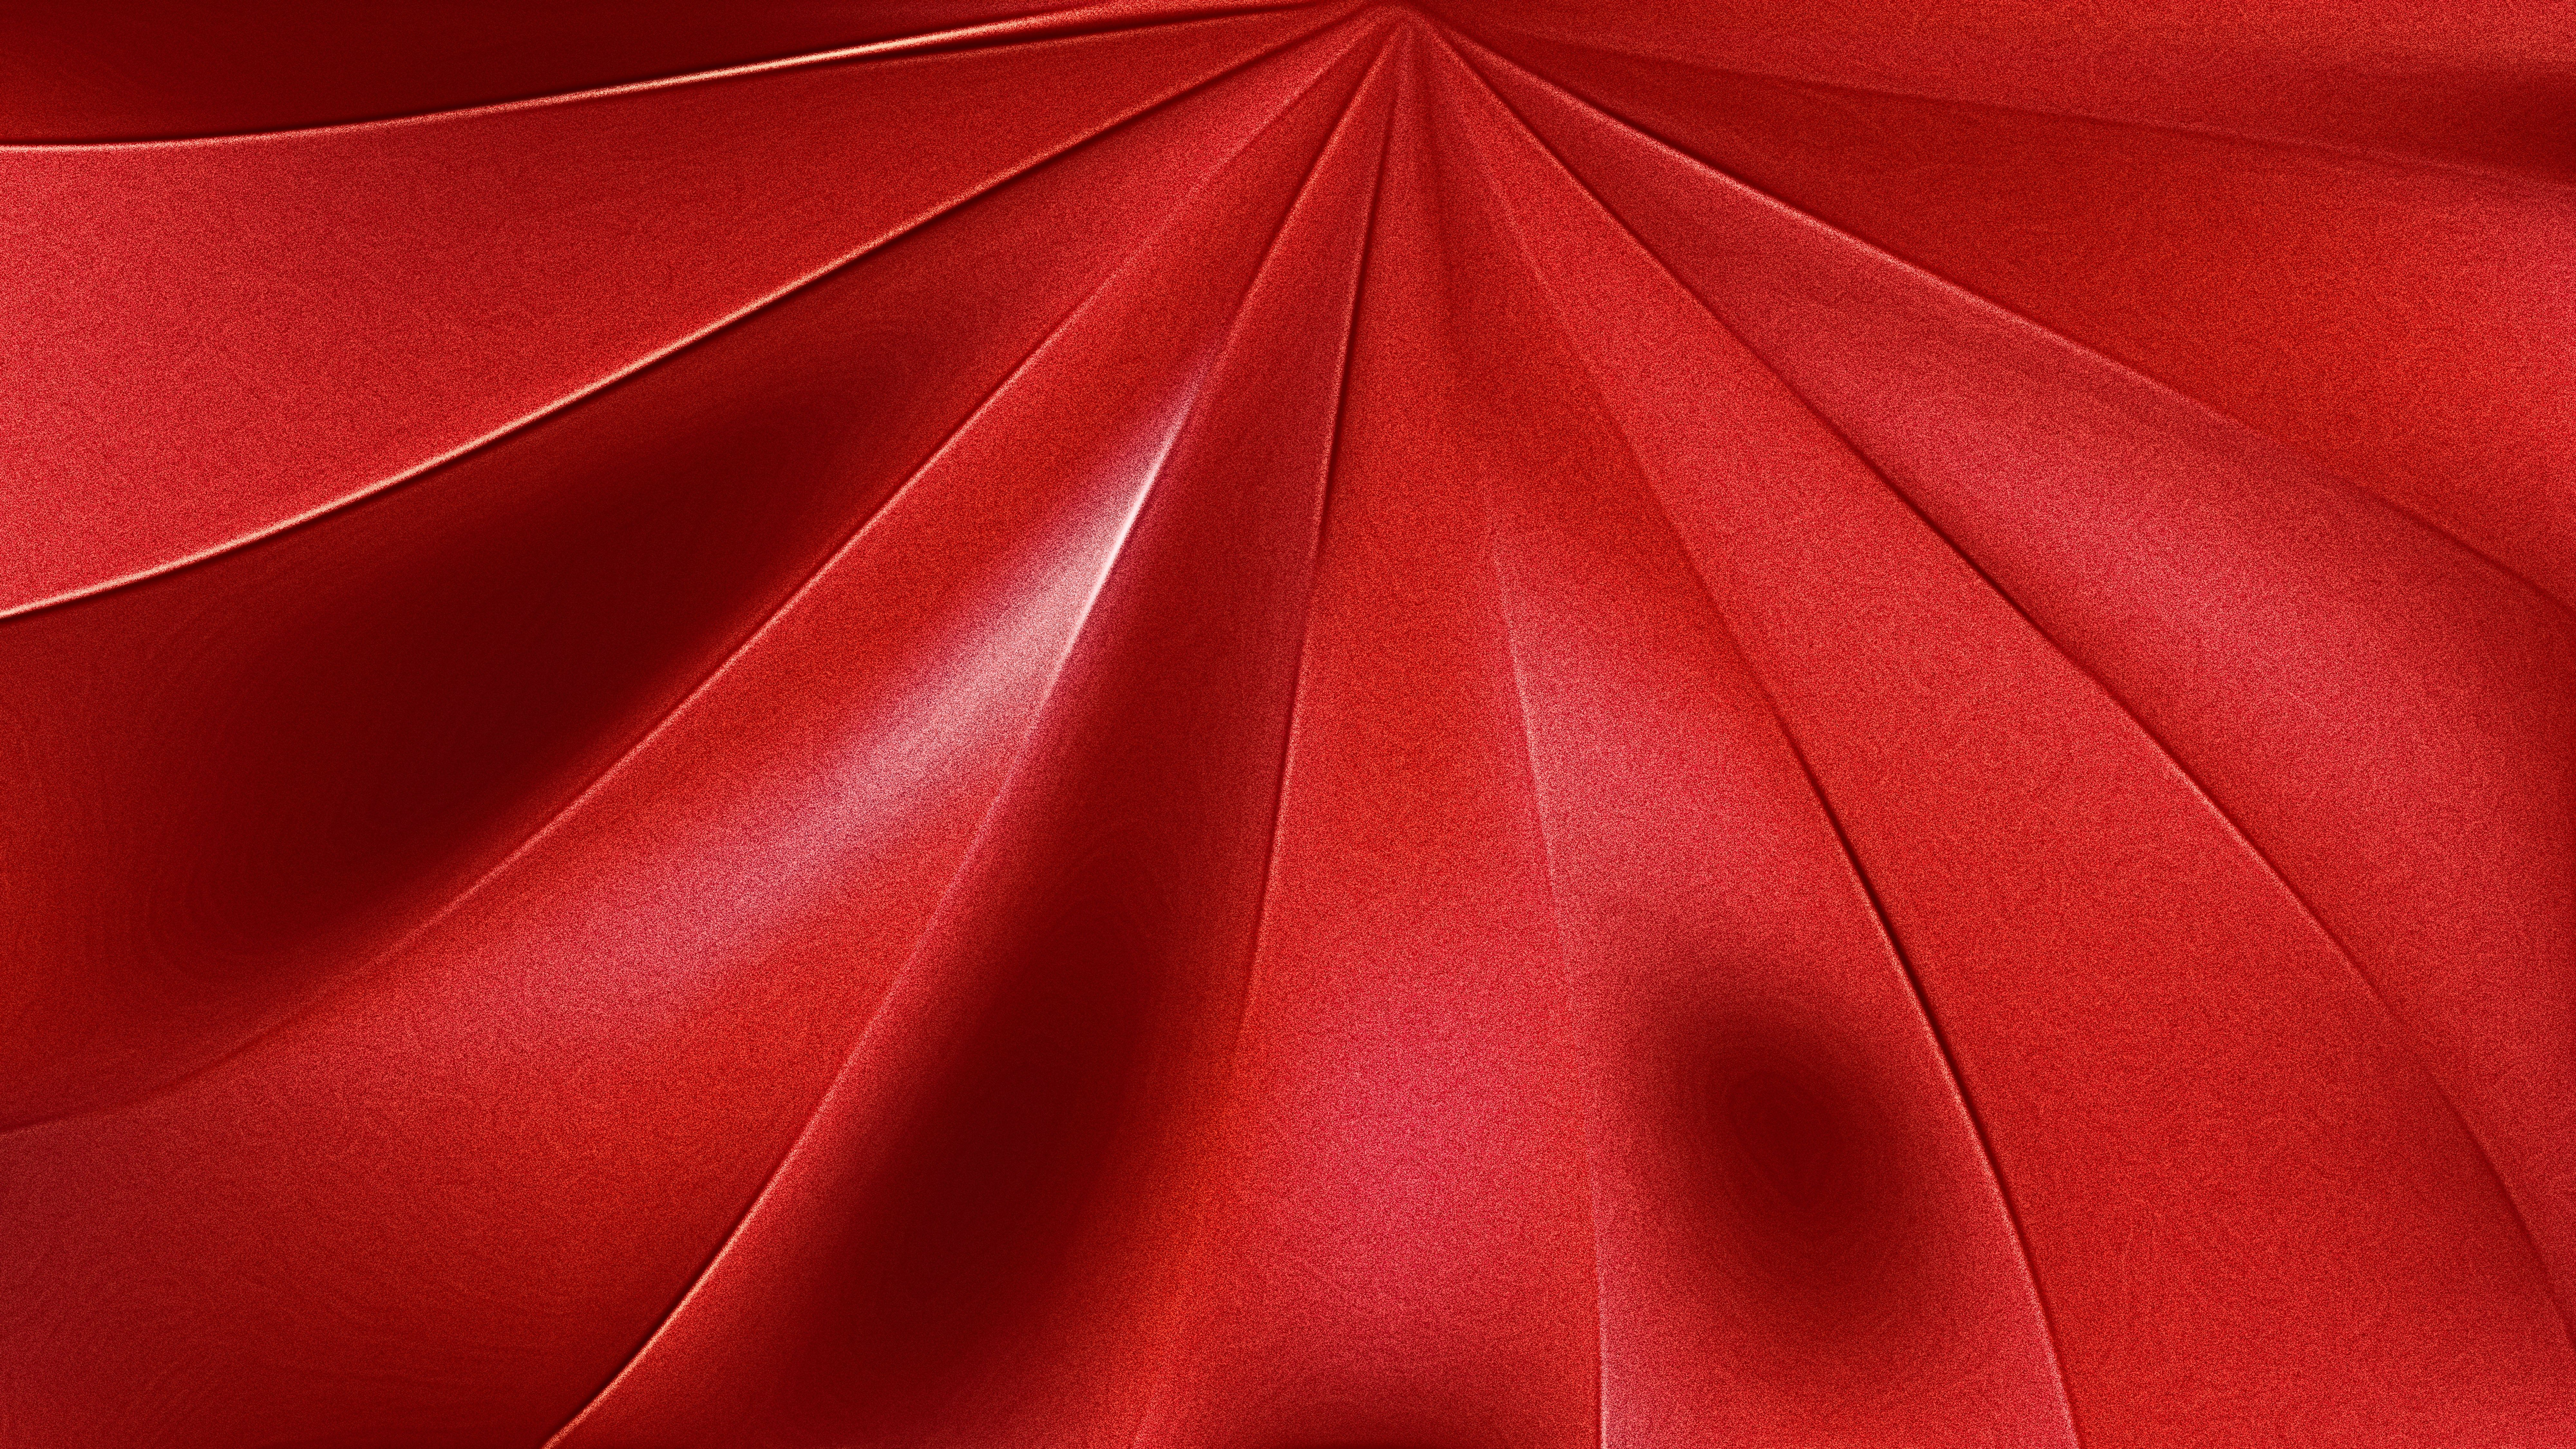 Red Shiny Metallic Background (With images) Metal